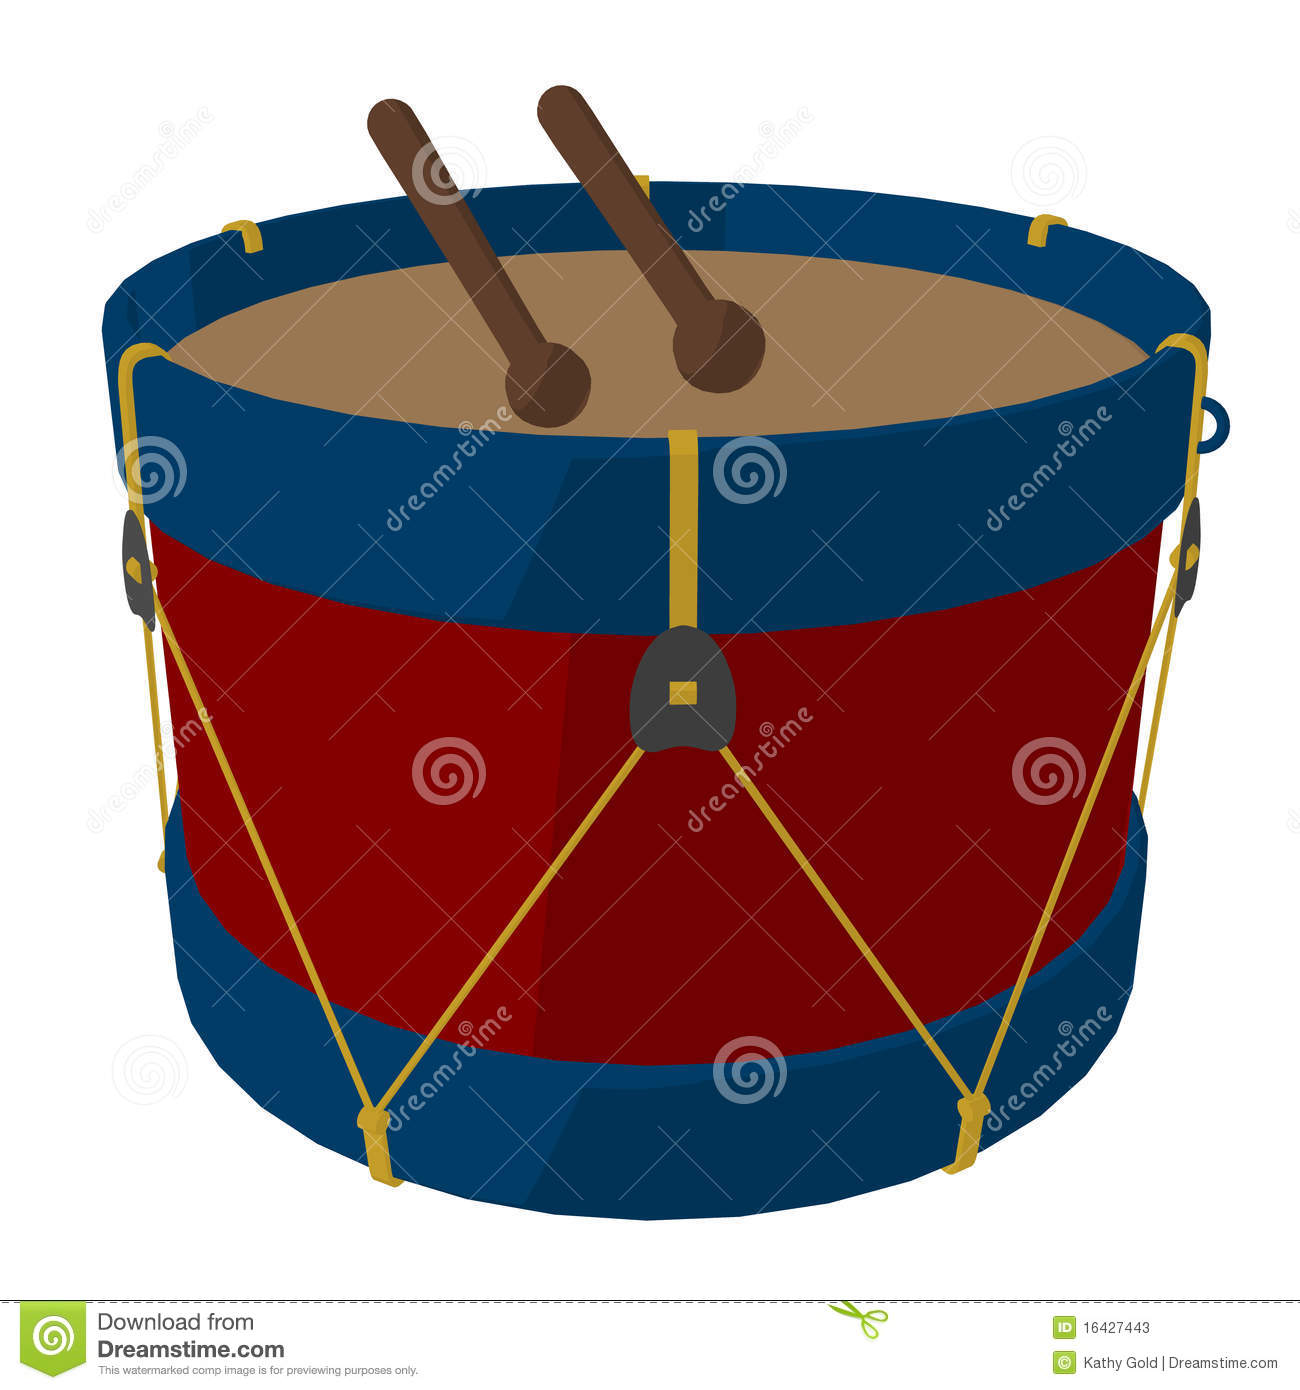 Marching Drums Clipart Marching band drums